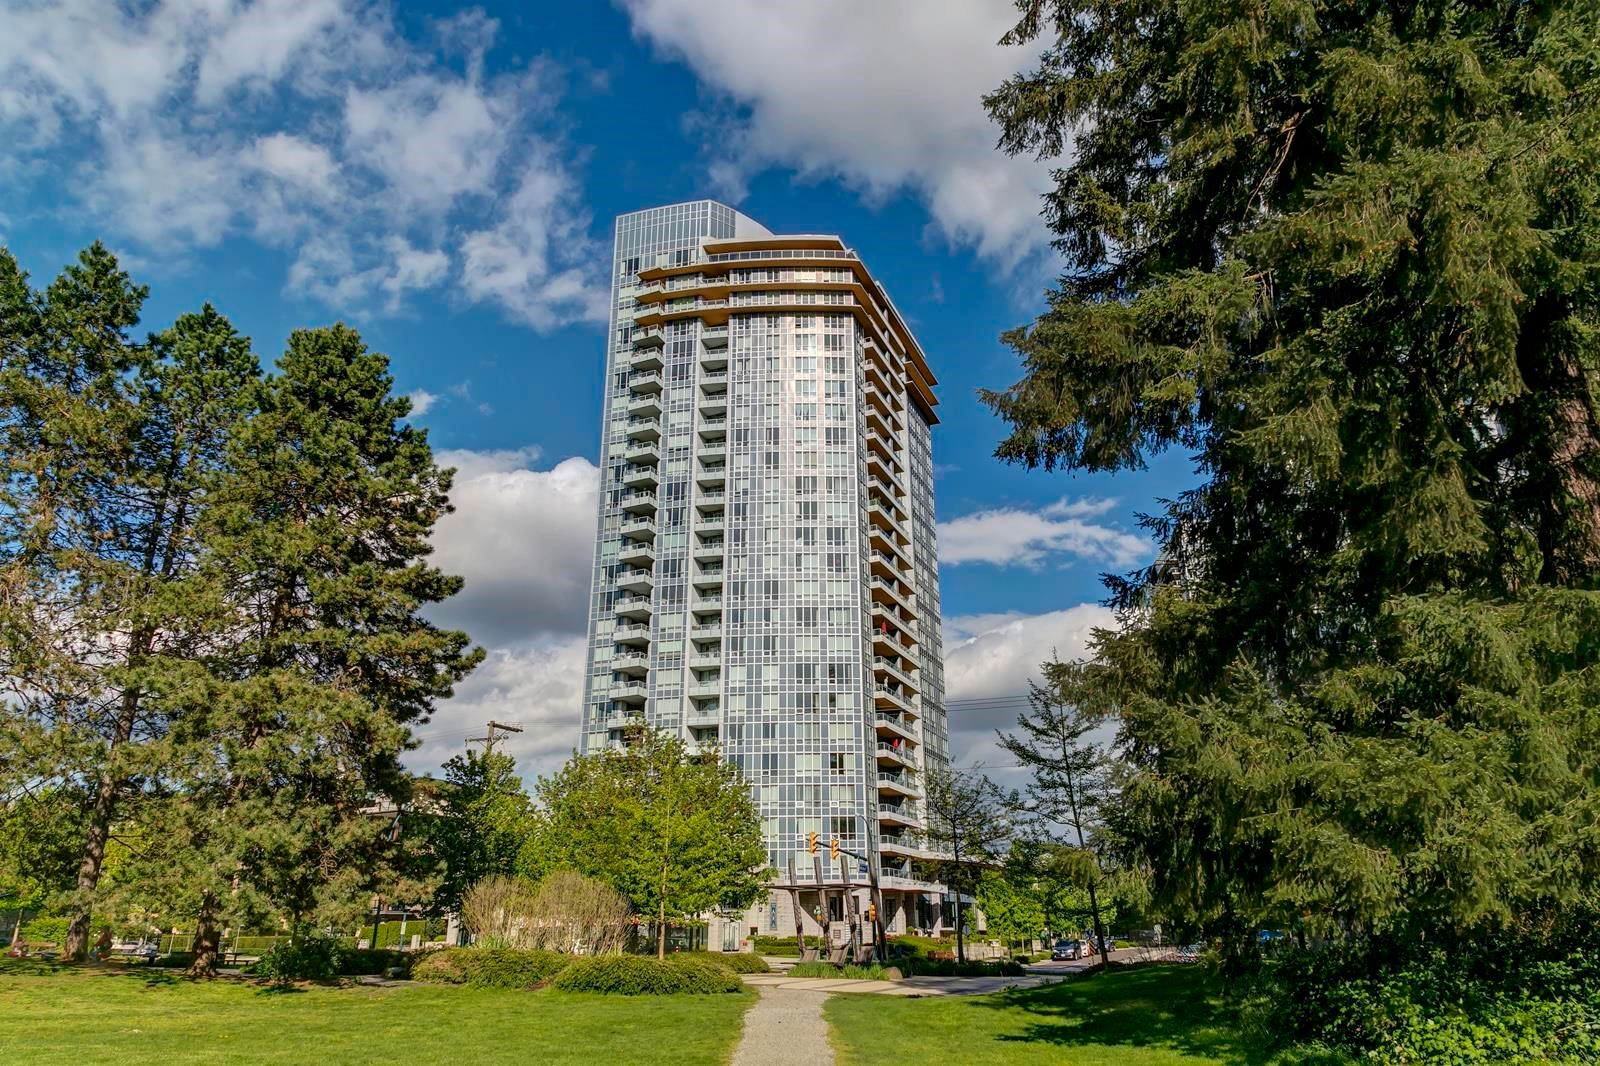 """Main Photo: 1506 3093 WINDSOR Gate in Coquitlam: New Horizons Condo for sale in """"The Windsor by Polygon"""" : MLS®# R2620096"""